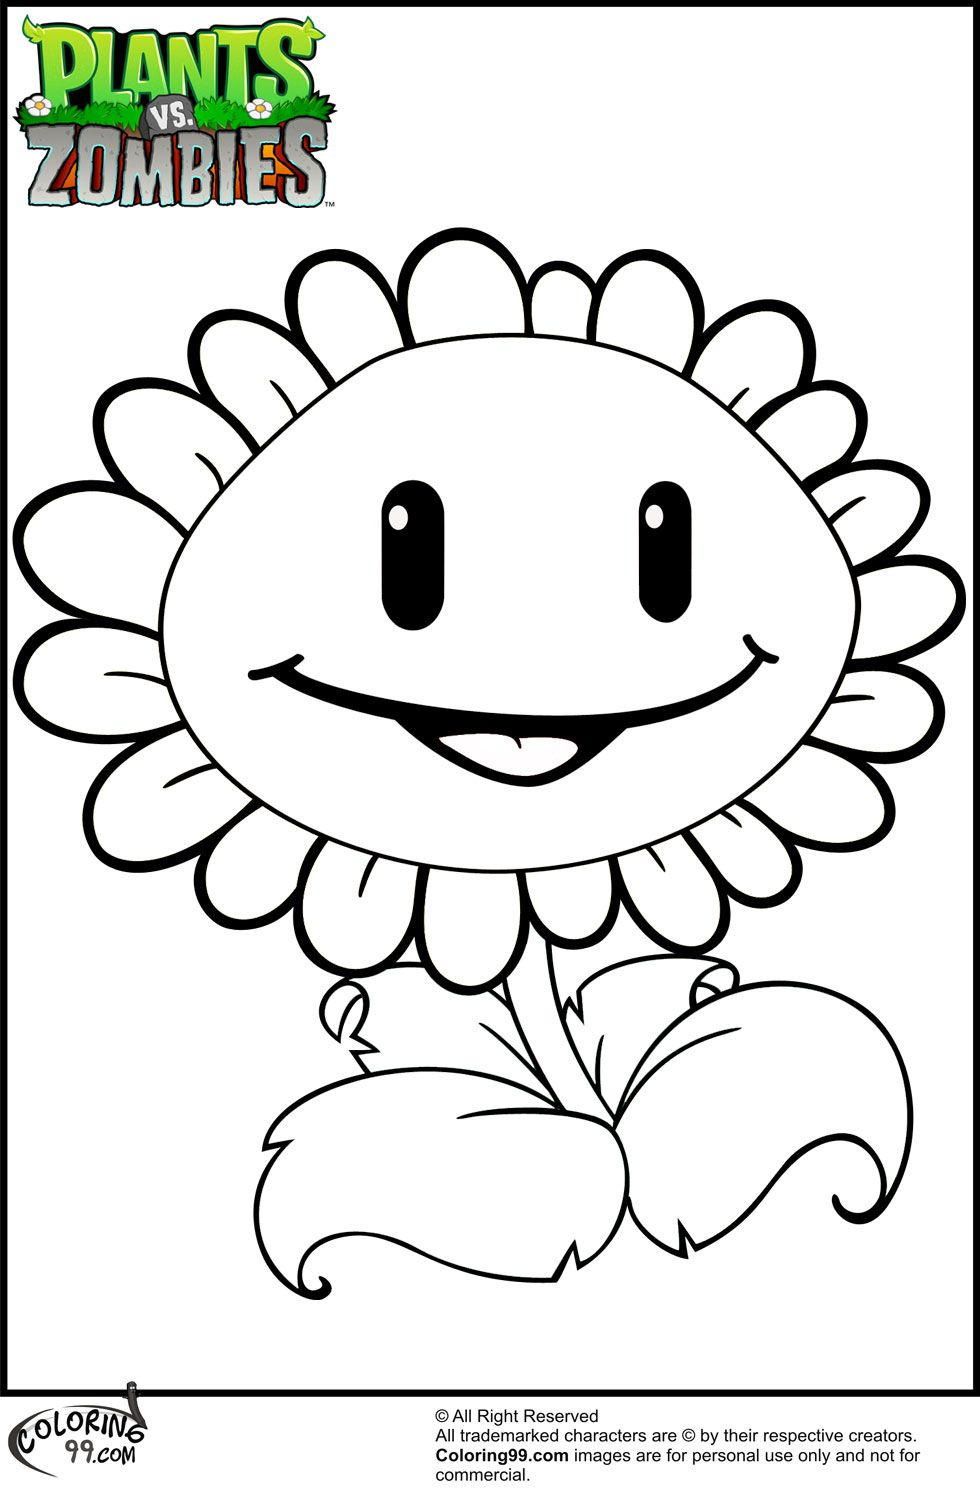 Plants Vs Zombies Is A Game That Is Well Known Nowadays To Be Played In Various Plat Plants Vs Zombies Birthday Party Sunflower Coloring Pages Sunflower Colors